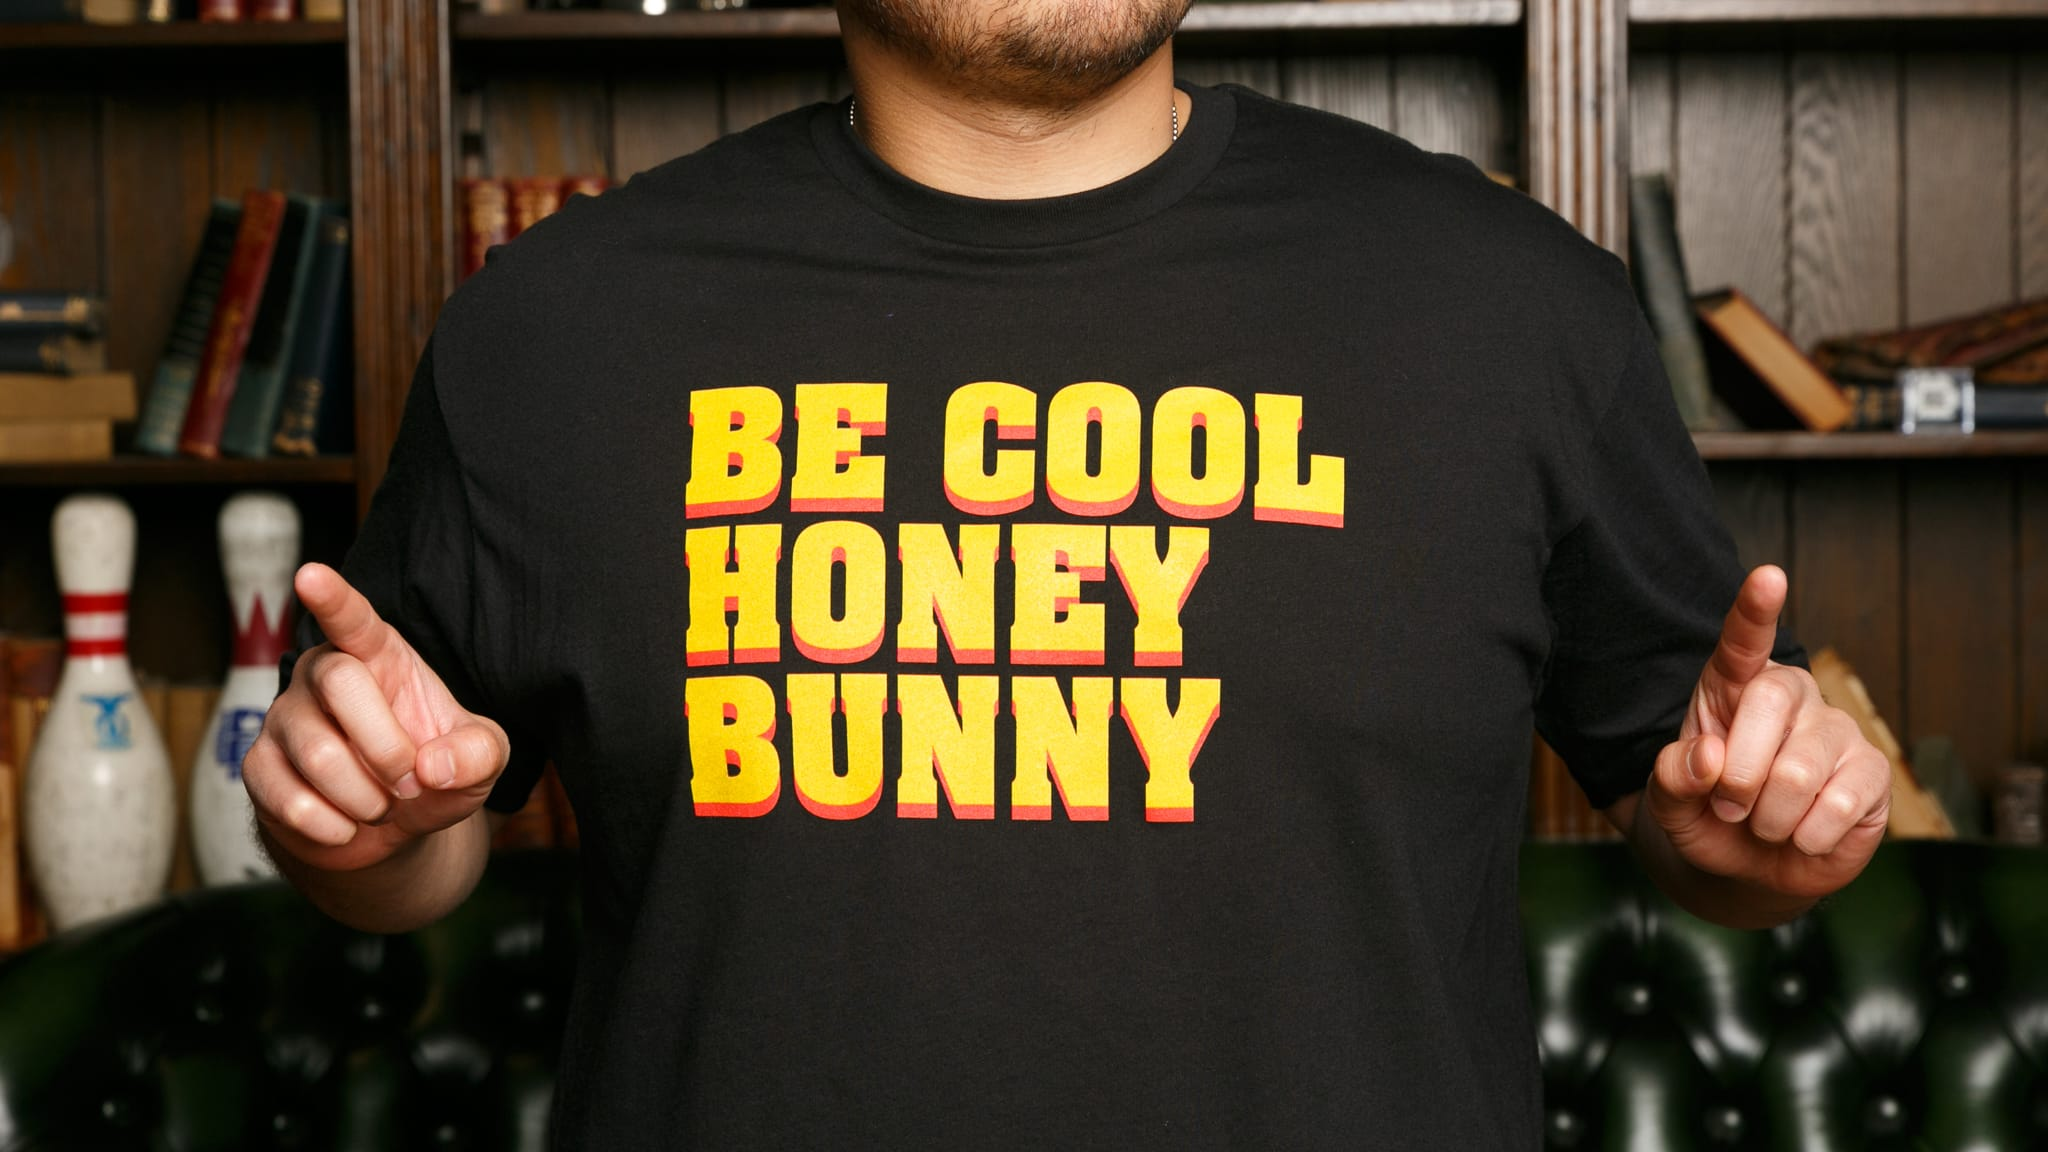 2e5a6c02 Be Cool Hunny Bunny Shirt   Cool Pulp Fiction Shirt   The Chivery